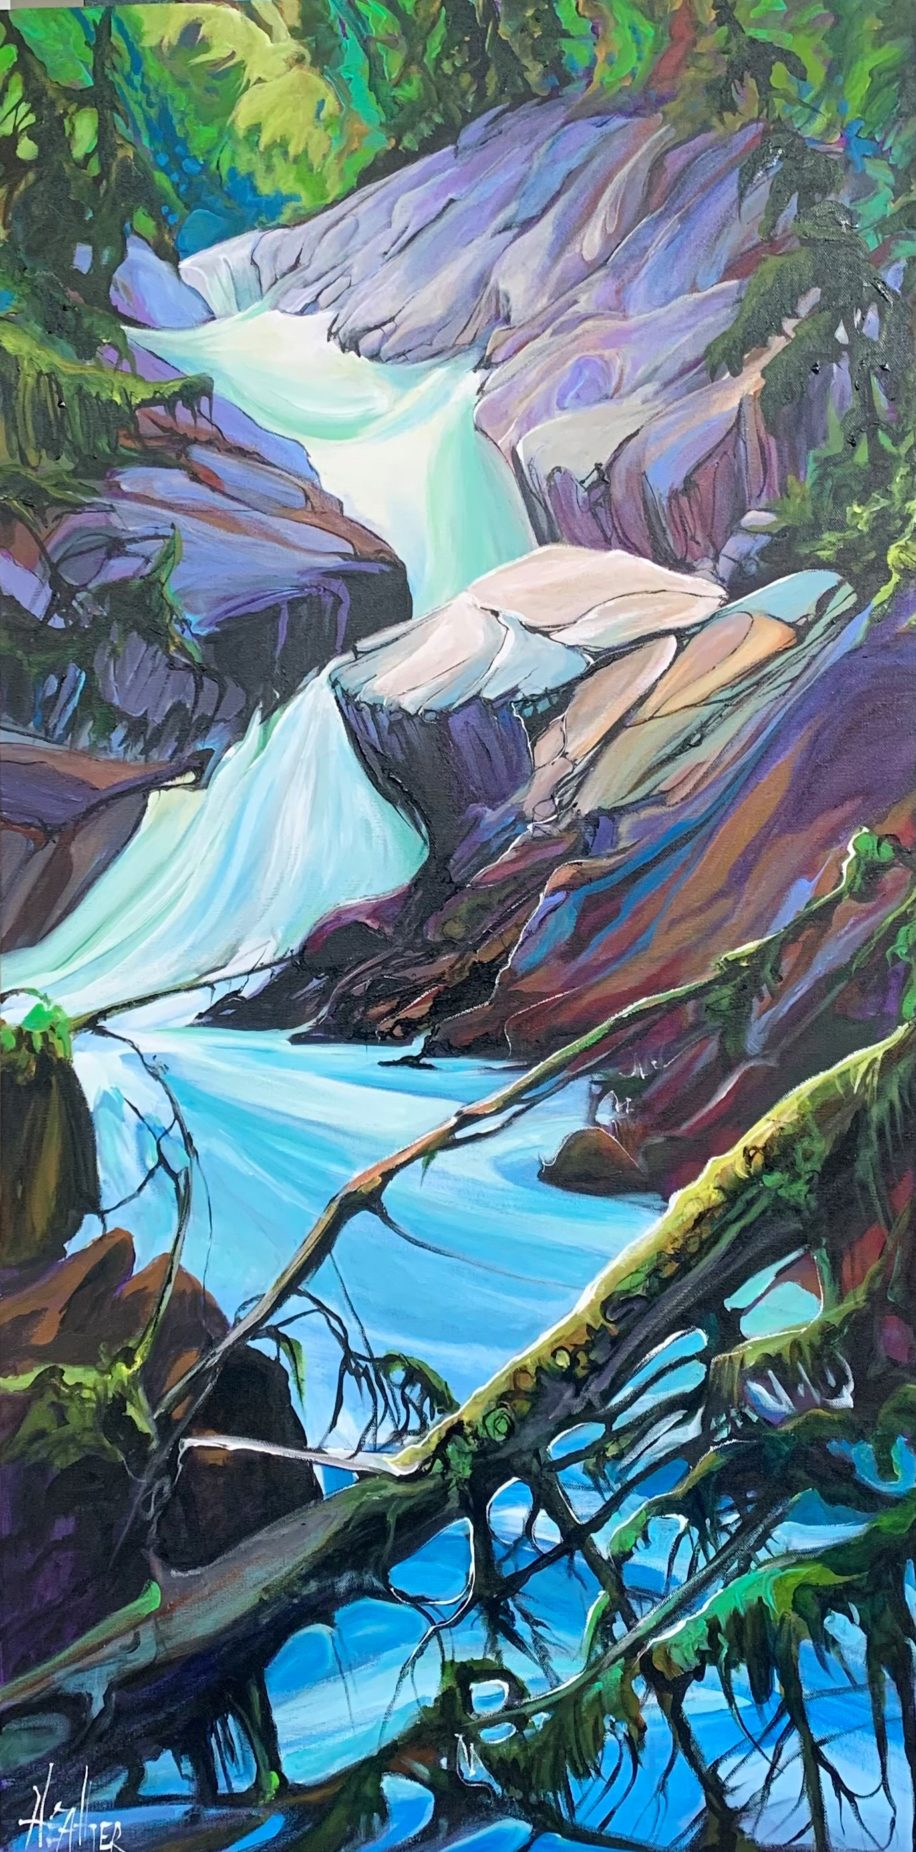 Illustrious Wild by Heather Pant at The Avenue Gallery, a contemporary fine art gallery in Victoria, BC, Canada.